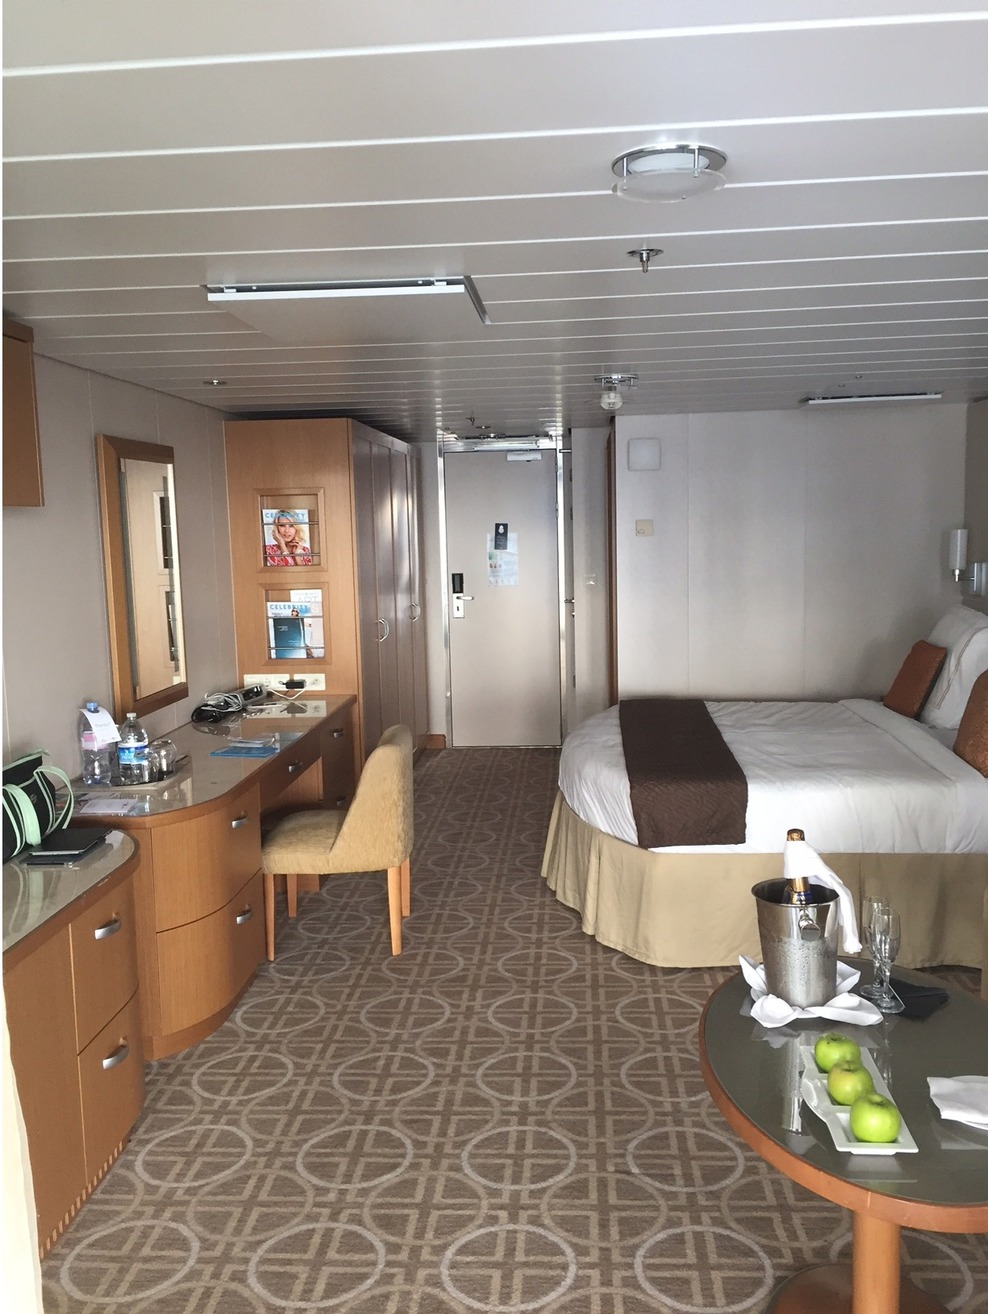 Celebrity Eclipse Deck Plans, Diagrams, Pictures, Video